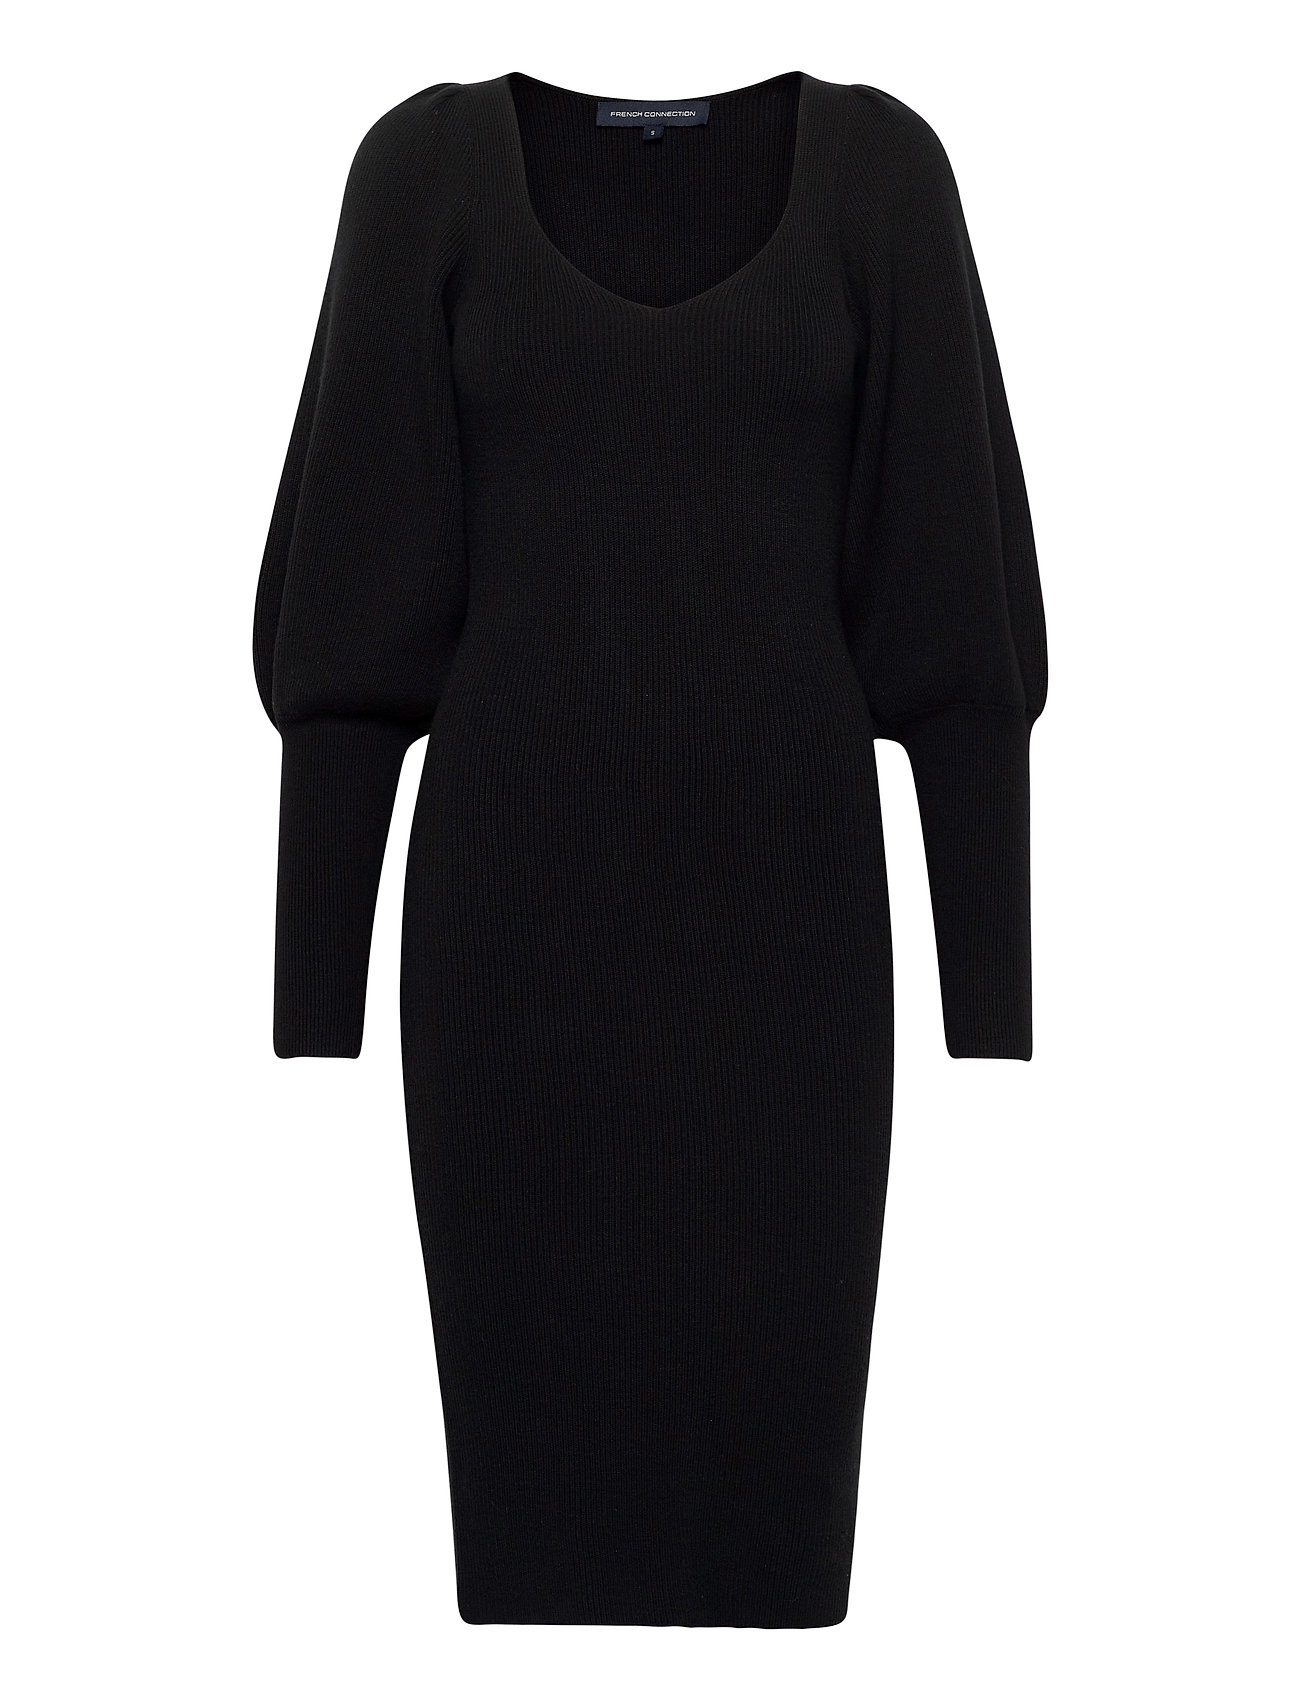 Image of Joss Knits Balloon Sleeve Dres Knælang Kjole Sort French Connection (3439674519)